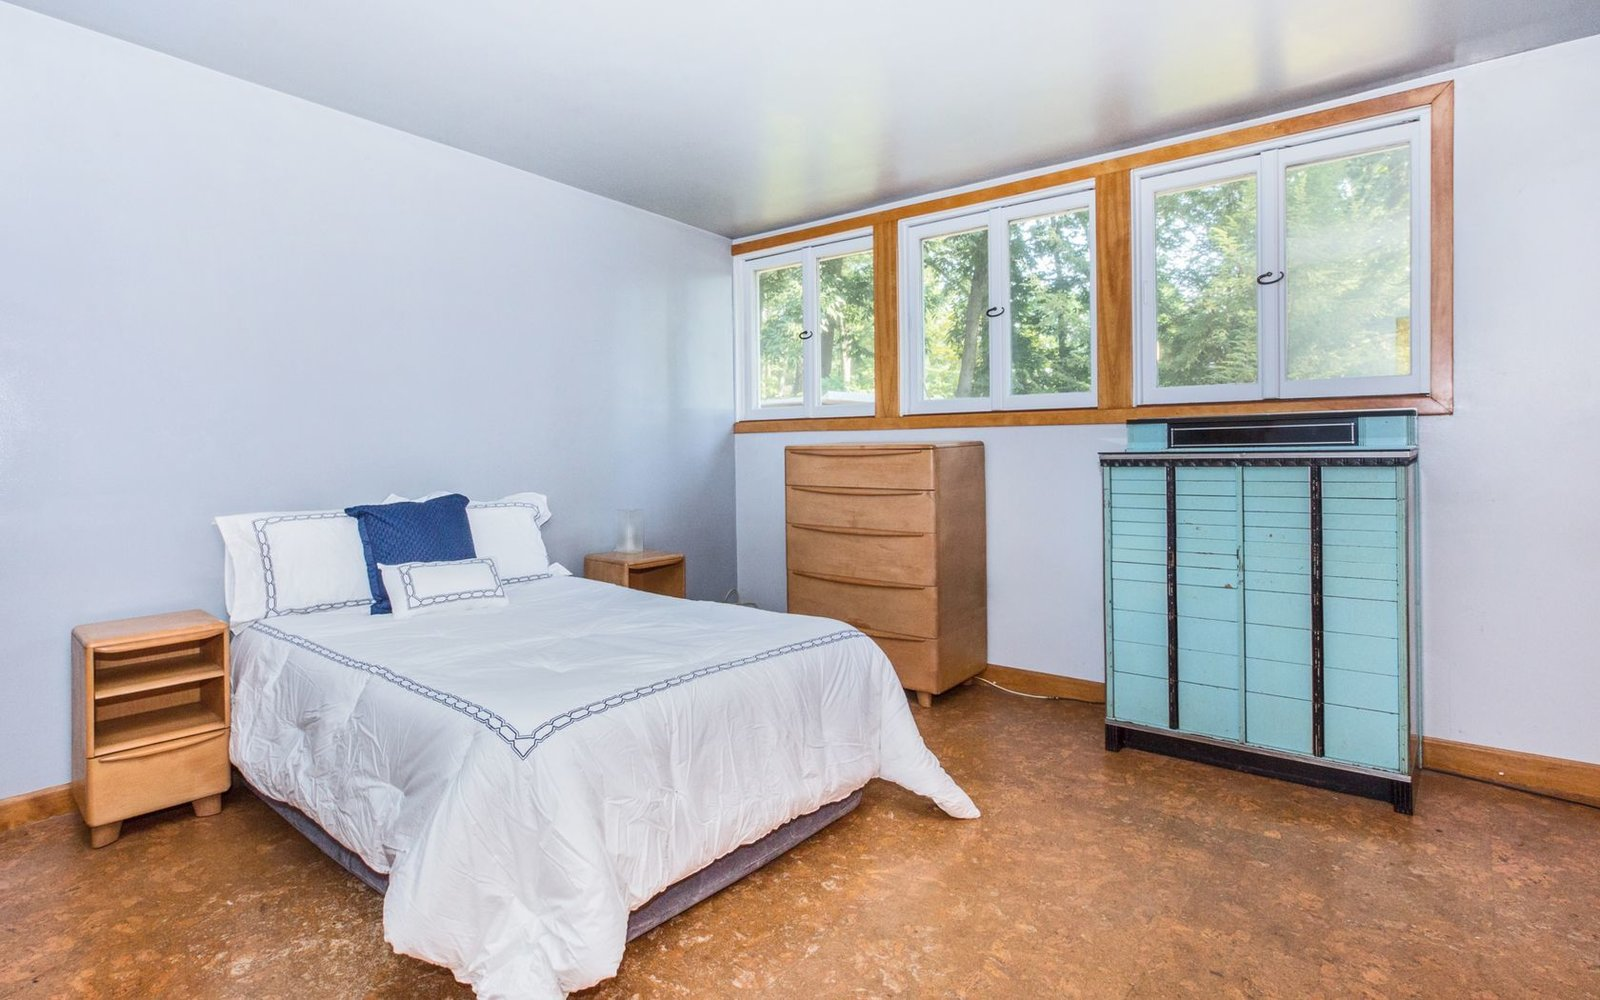 Bedroom, Bed, Dresser, Shelves, Night Stands, Accent Lighting, Storage, Ceiling Lighting, and Cork Floor Bedroom 1  Classic Mid Century Modern home for sale